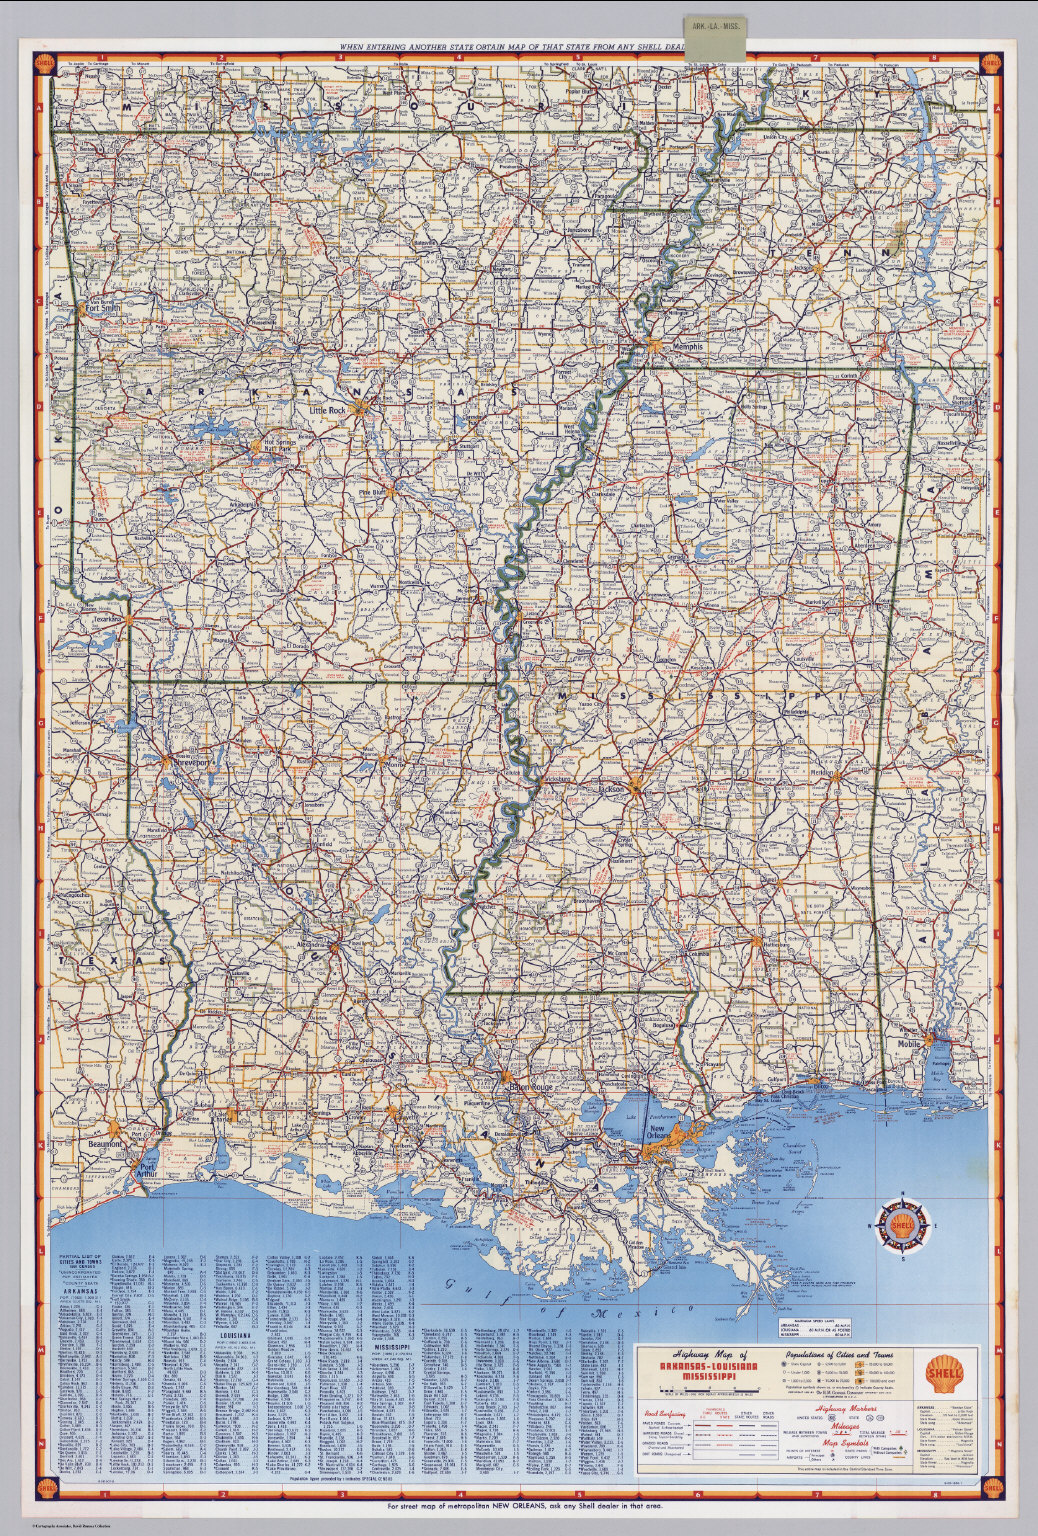 Shell Highway Map of ArkansasLouisiana Mississippi David Rumsey